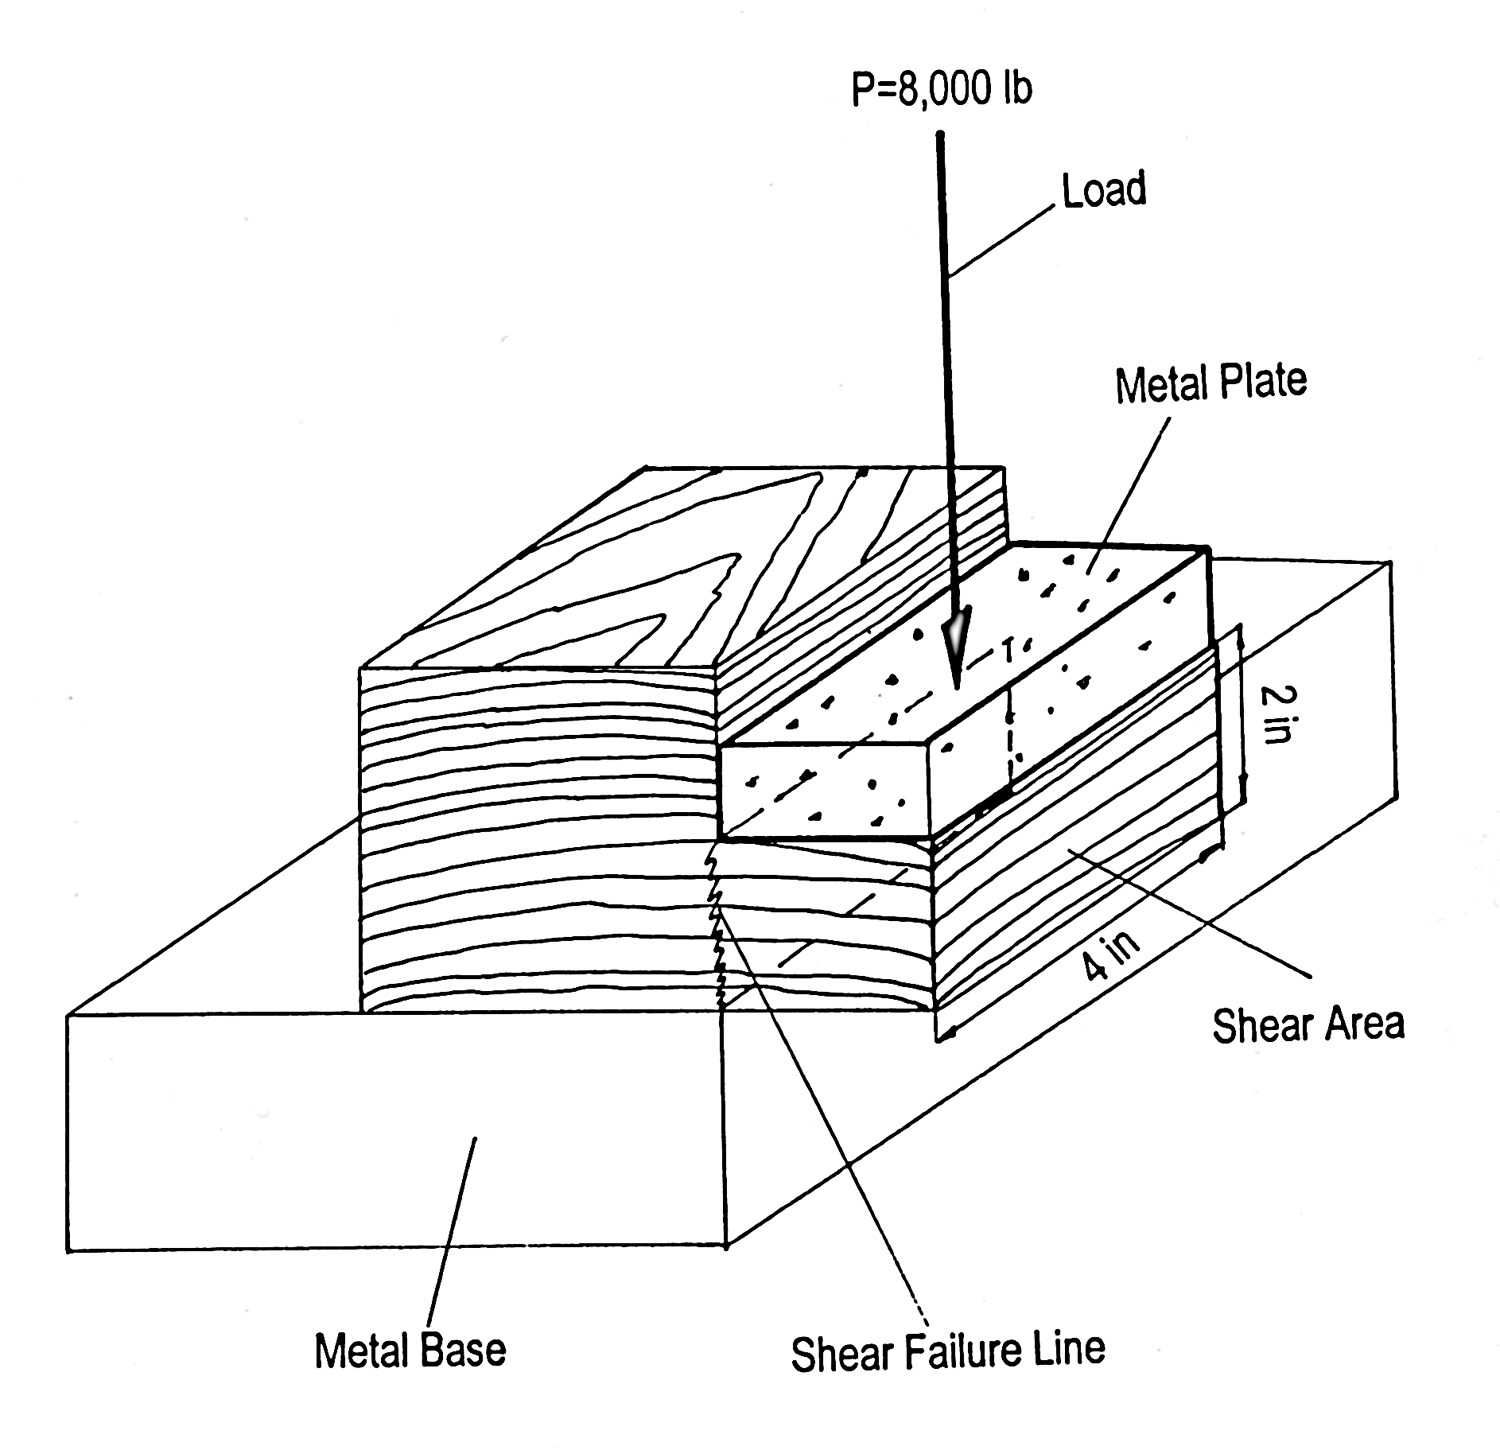 FAPC-162 Strength Properties of Wood for Practical